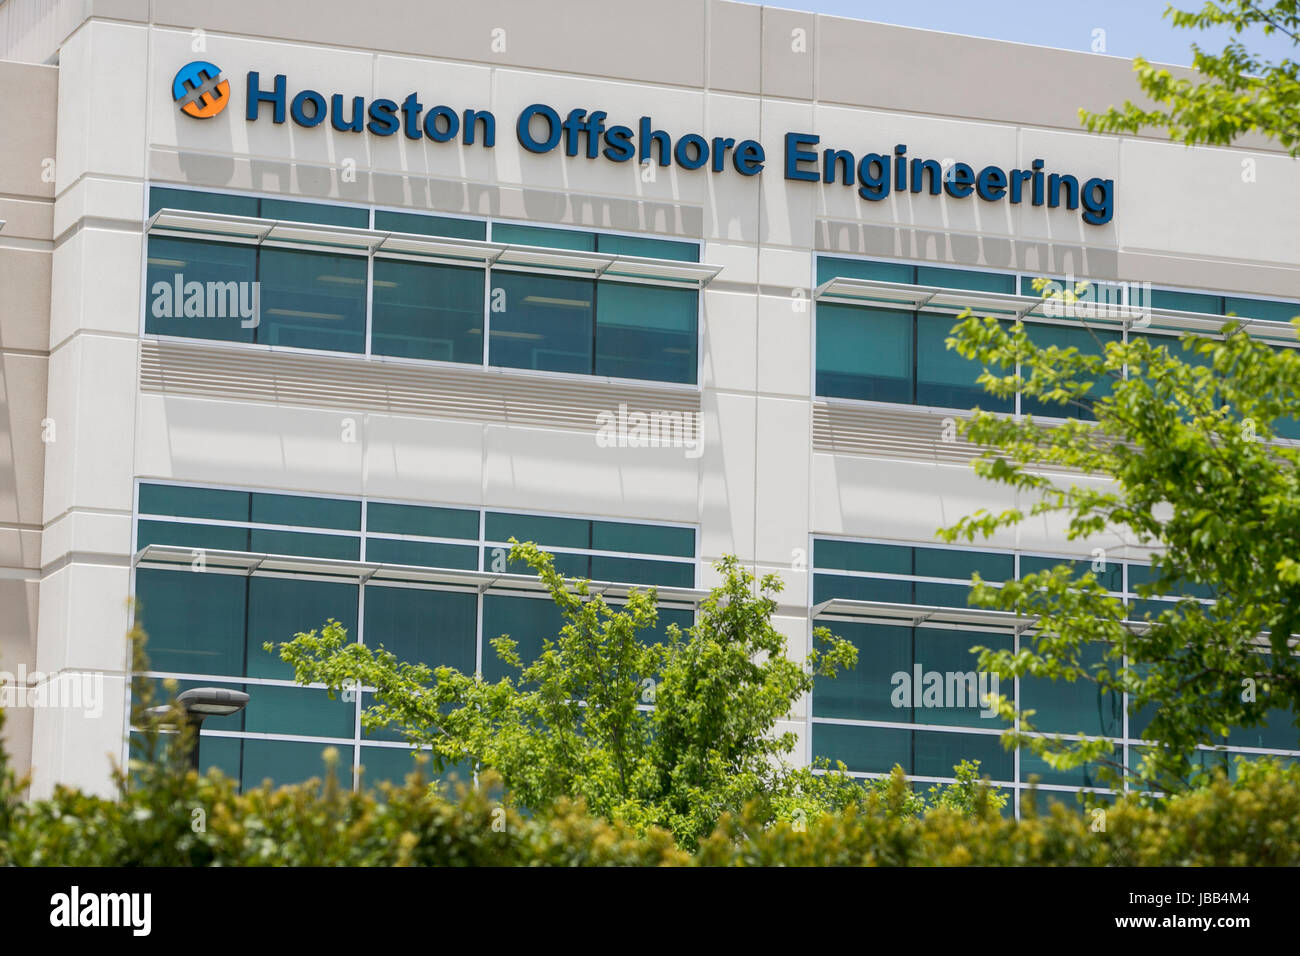 A logo sign outside of the headquarters of Houston Offshore Engineering in Houston, Texas, on May 27, 2017. - Stock Image